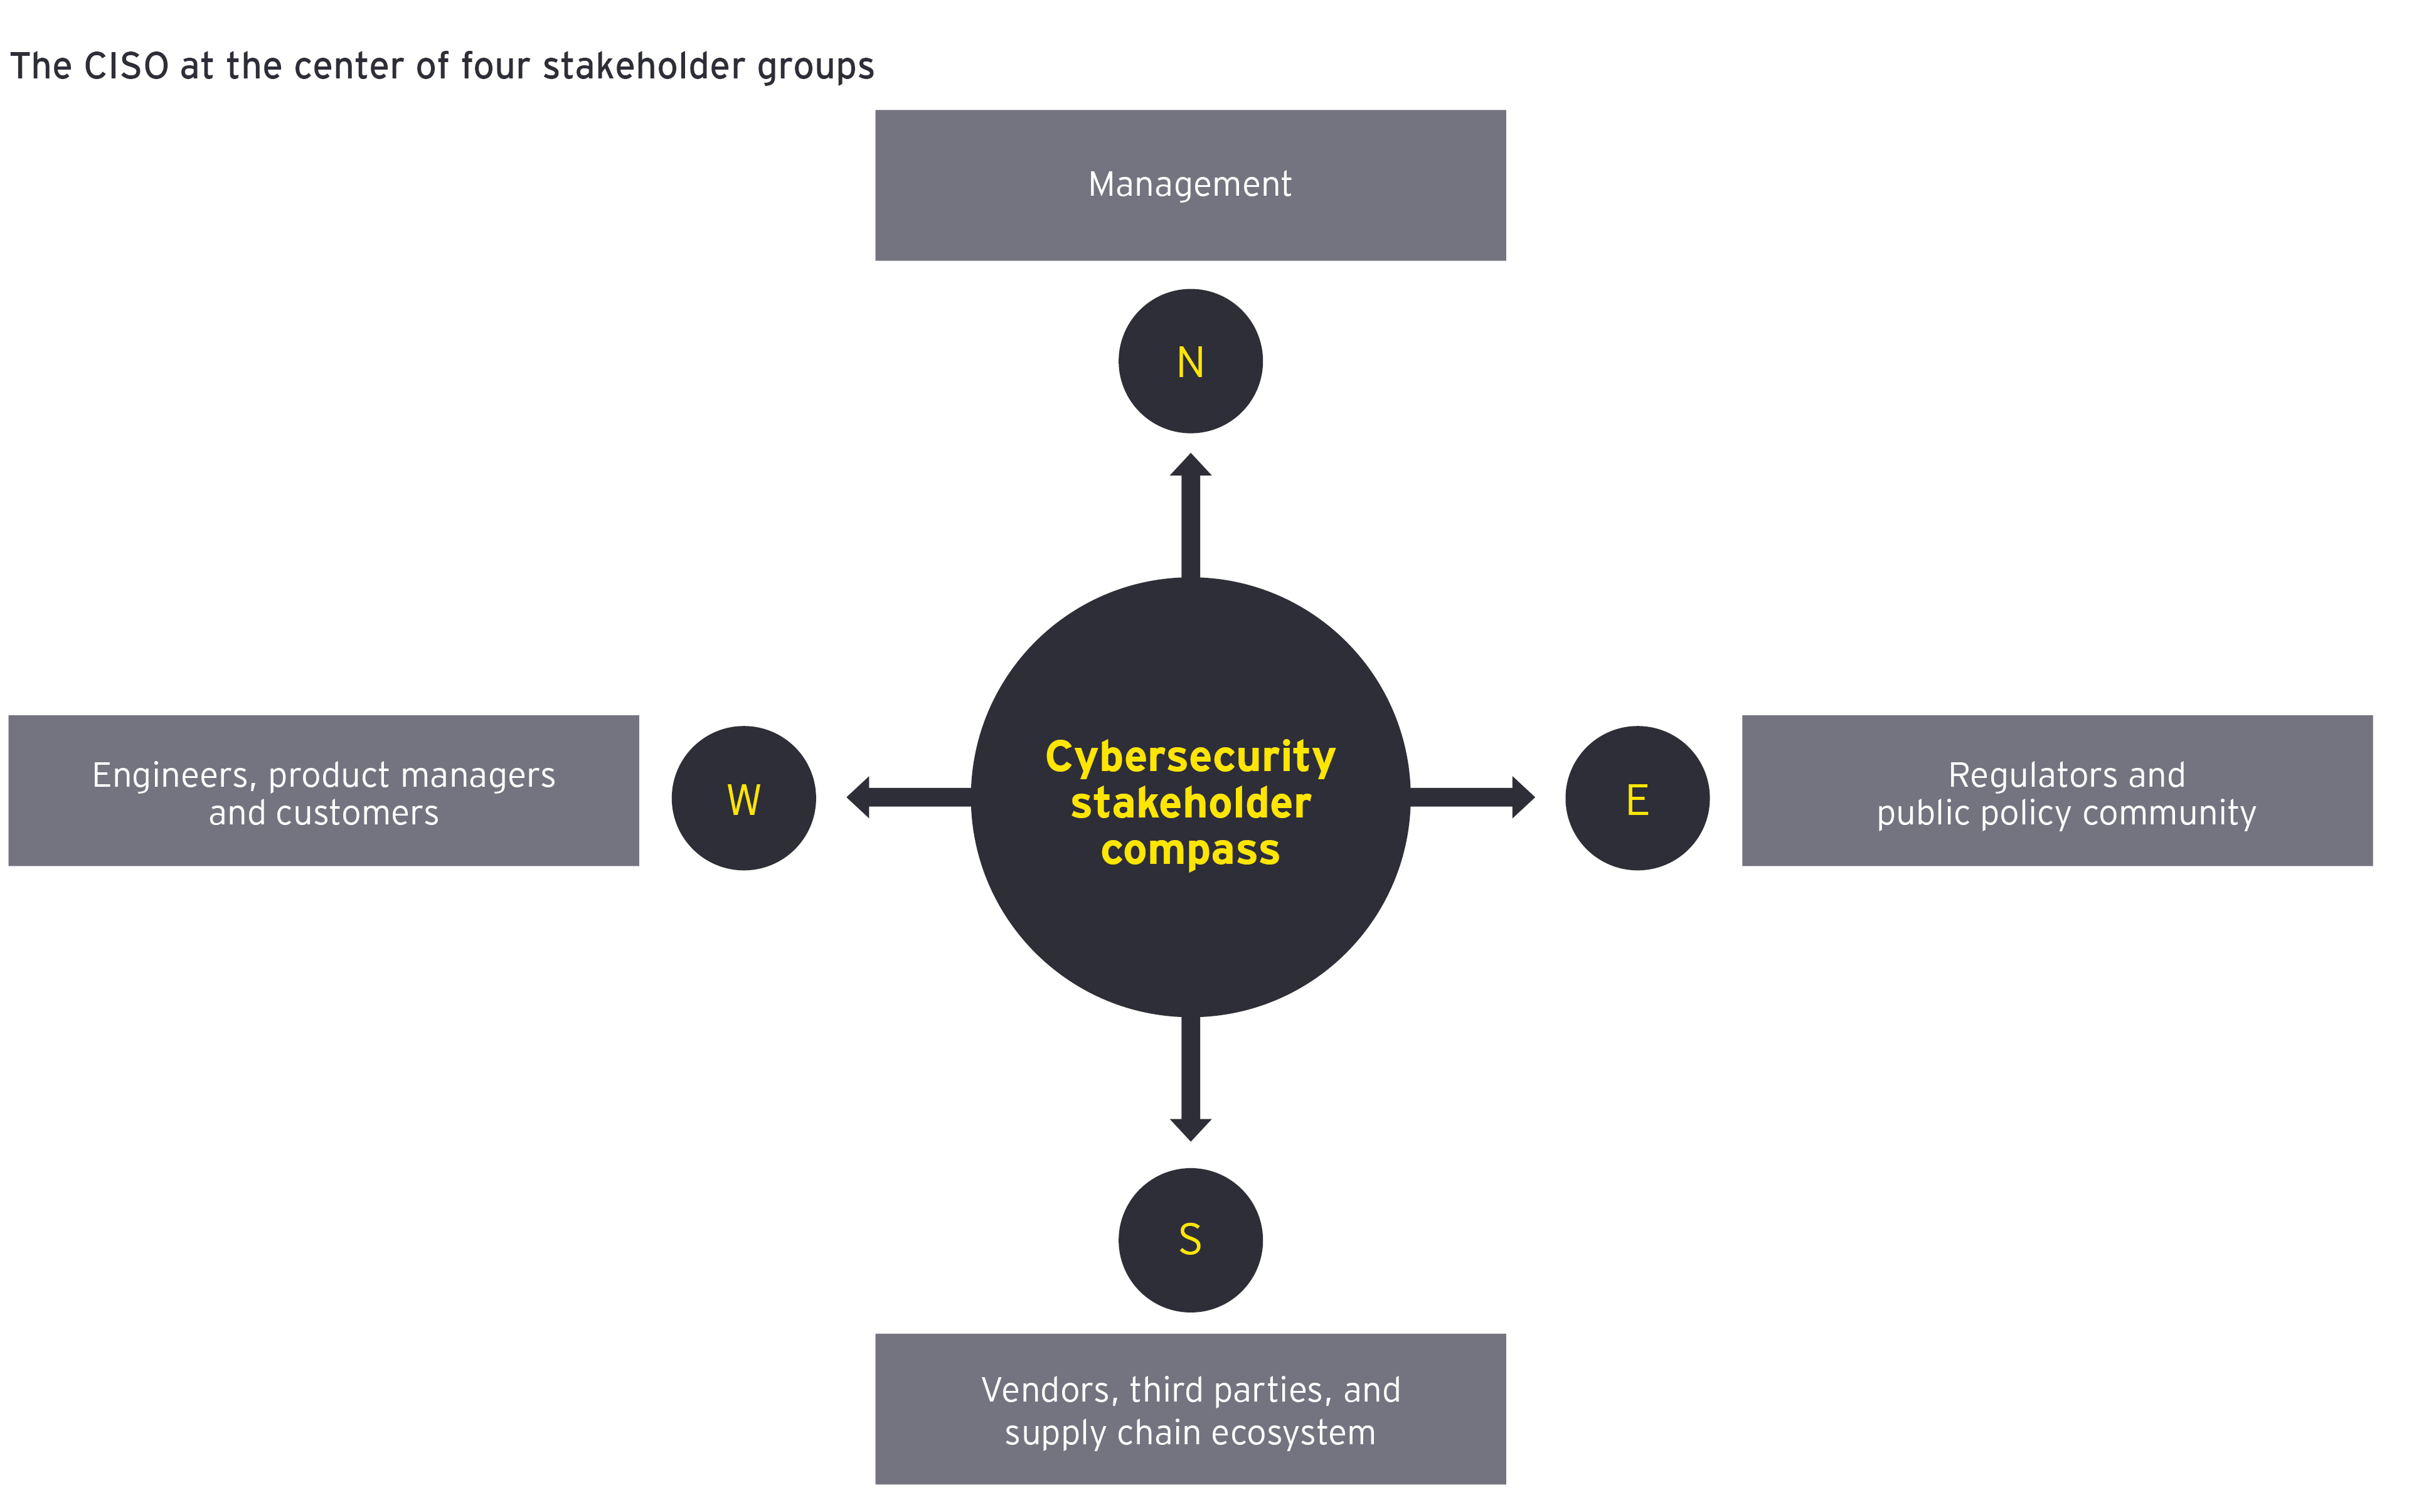 Cyber stakeholder compass